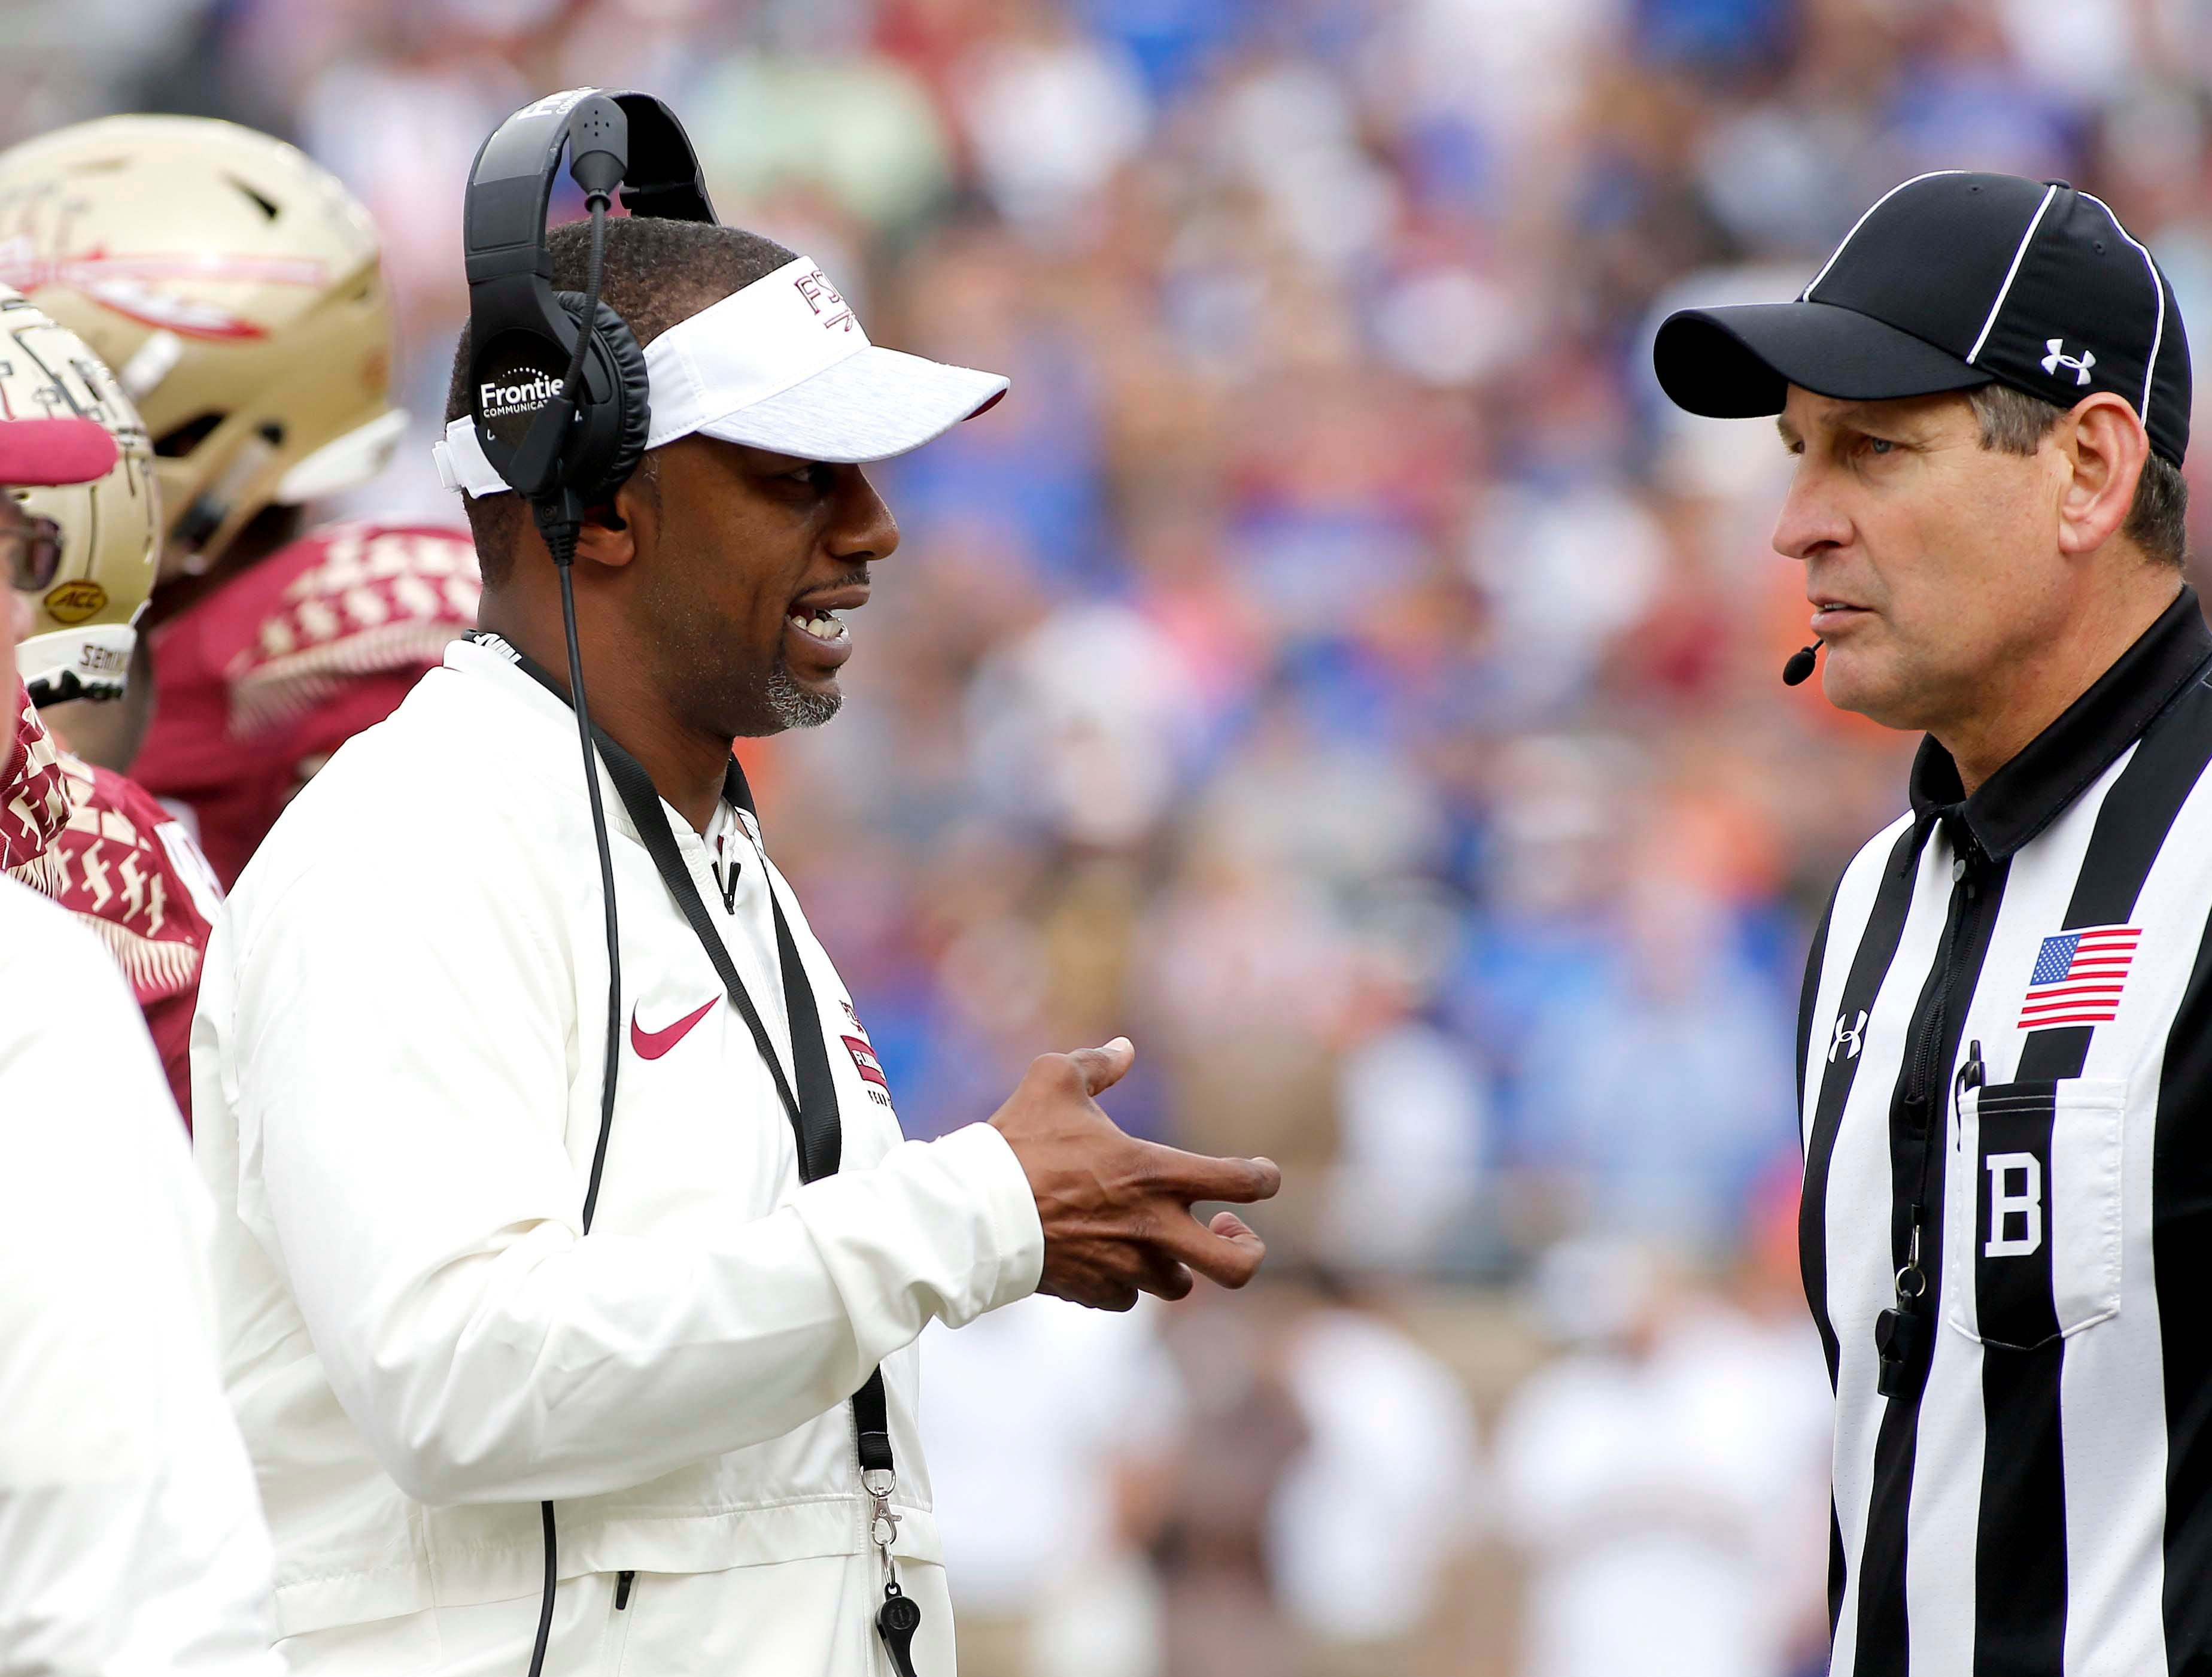 Nov 24, 2018; Tallahassee, FL, USA; Florida State Seminoles head coach Willie Taggart discusses a penalty with an official during the first half of action at Doak Campbell Stadium. Mandatory Credit: Glenn Beil-USA TODAY Sports